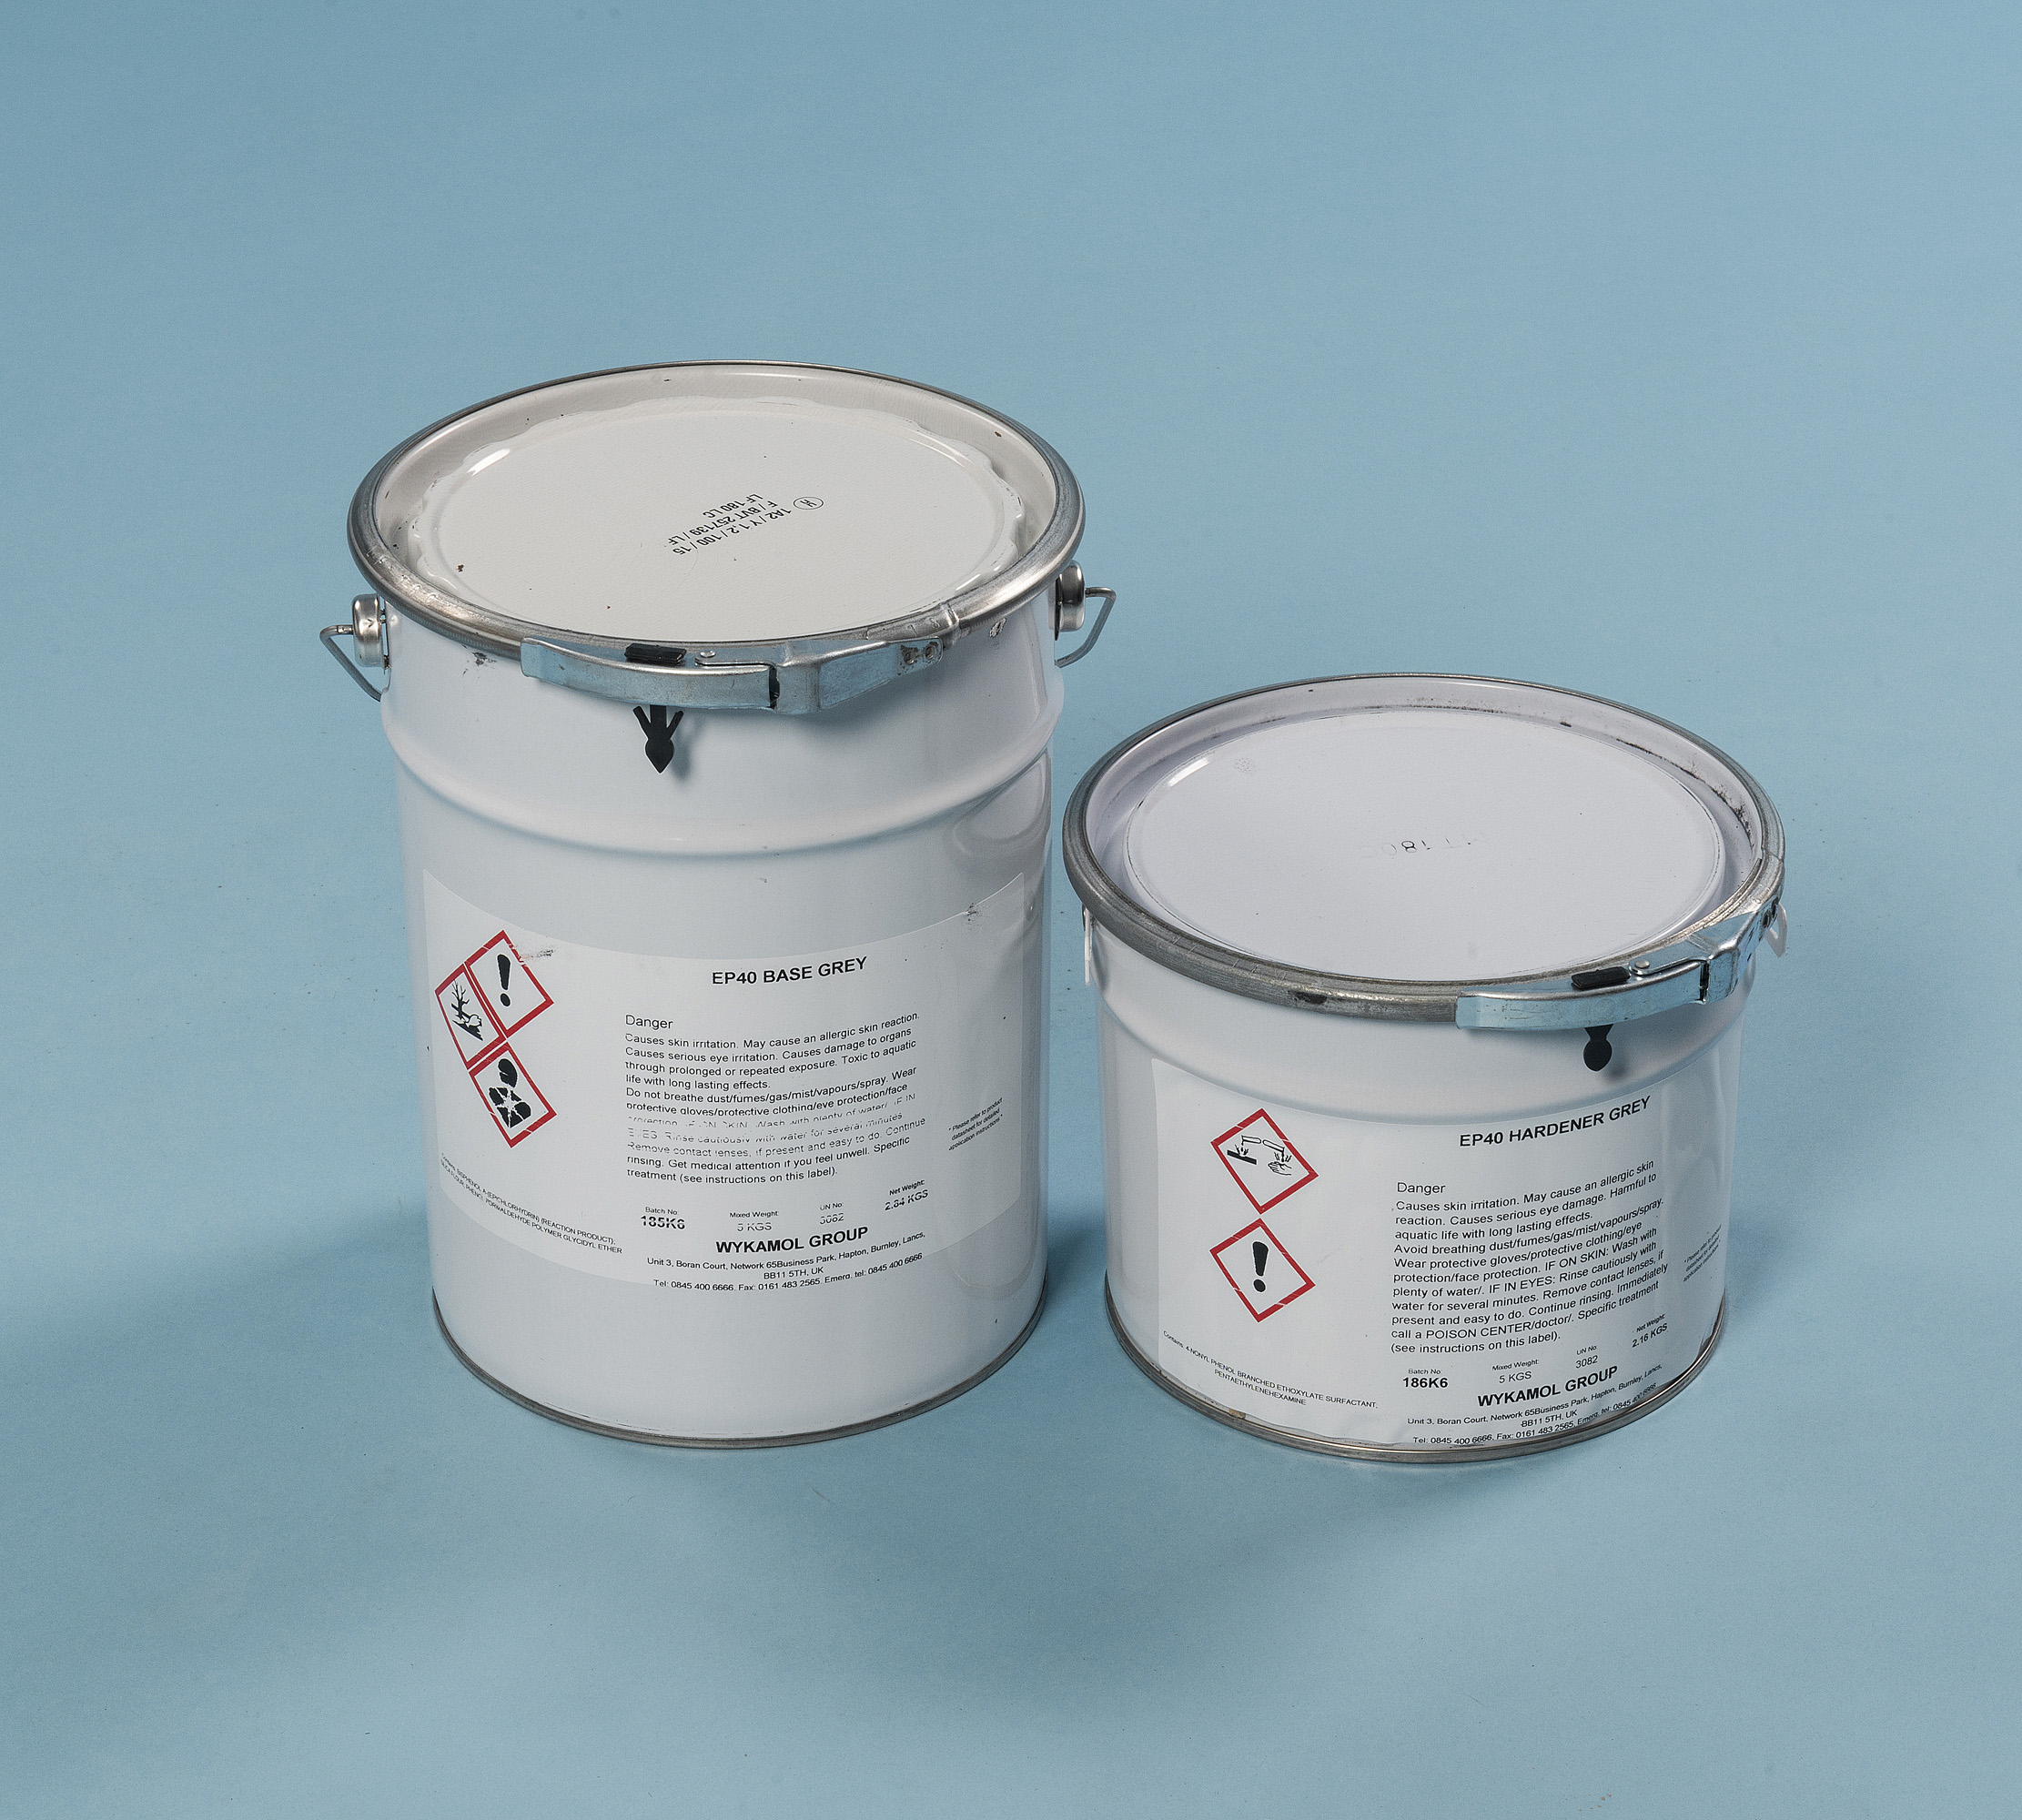 Damp proofing paint waterproof paint twistfix - Damp proofing paint for exterior walls ...